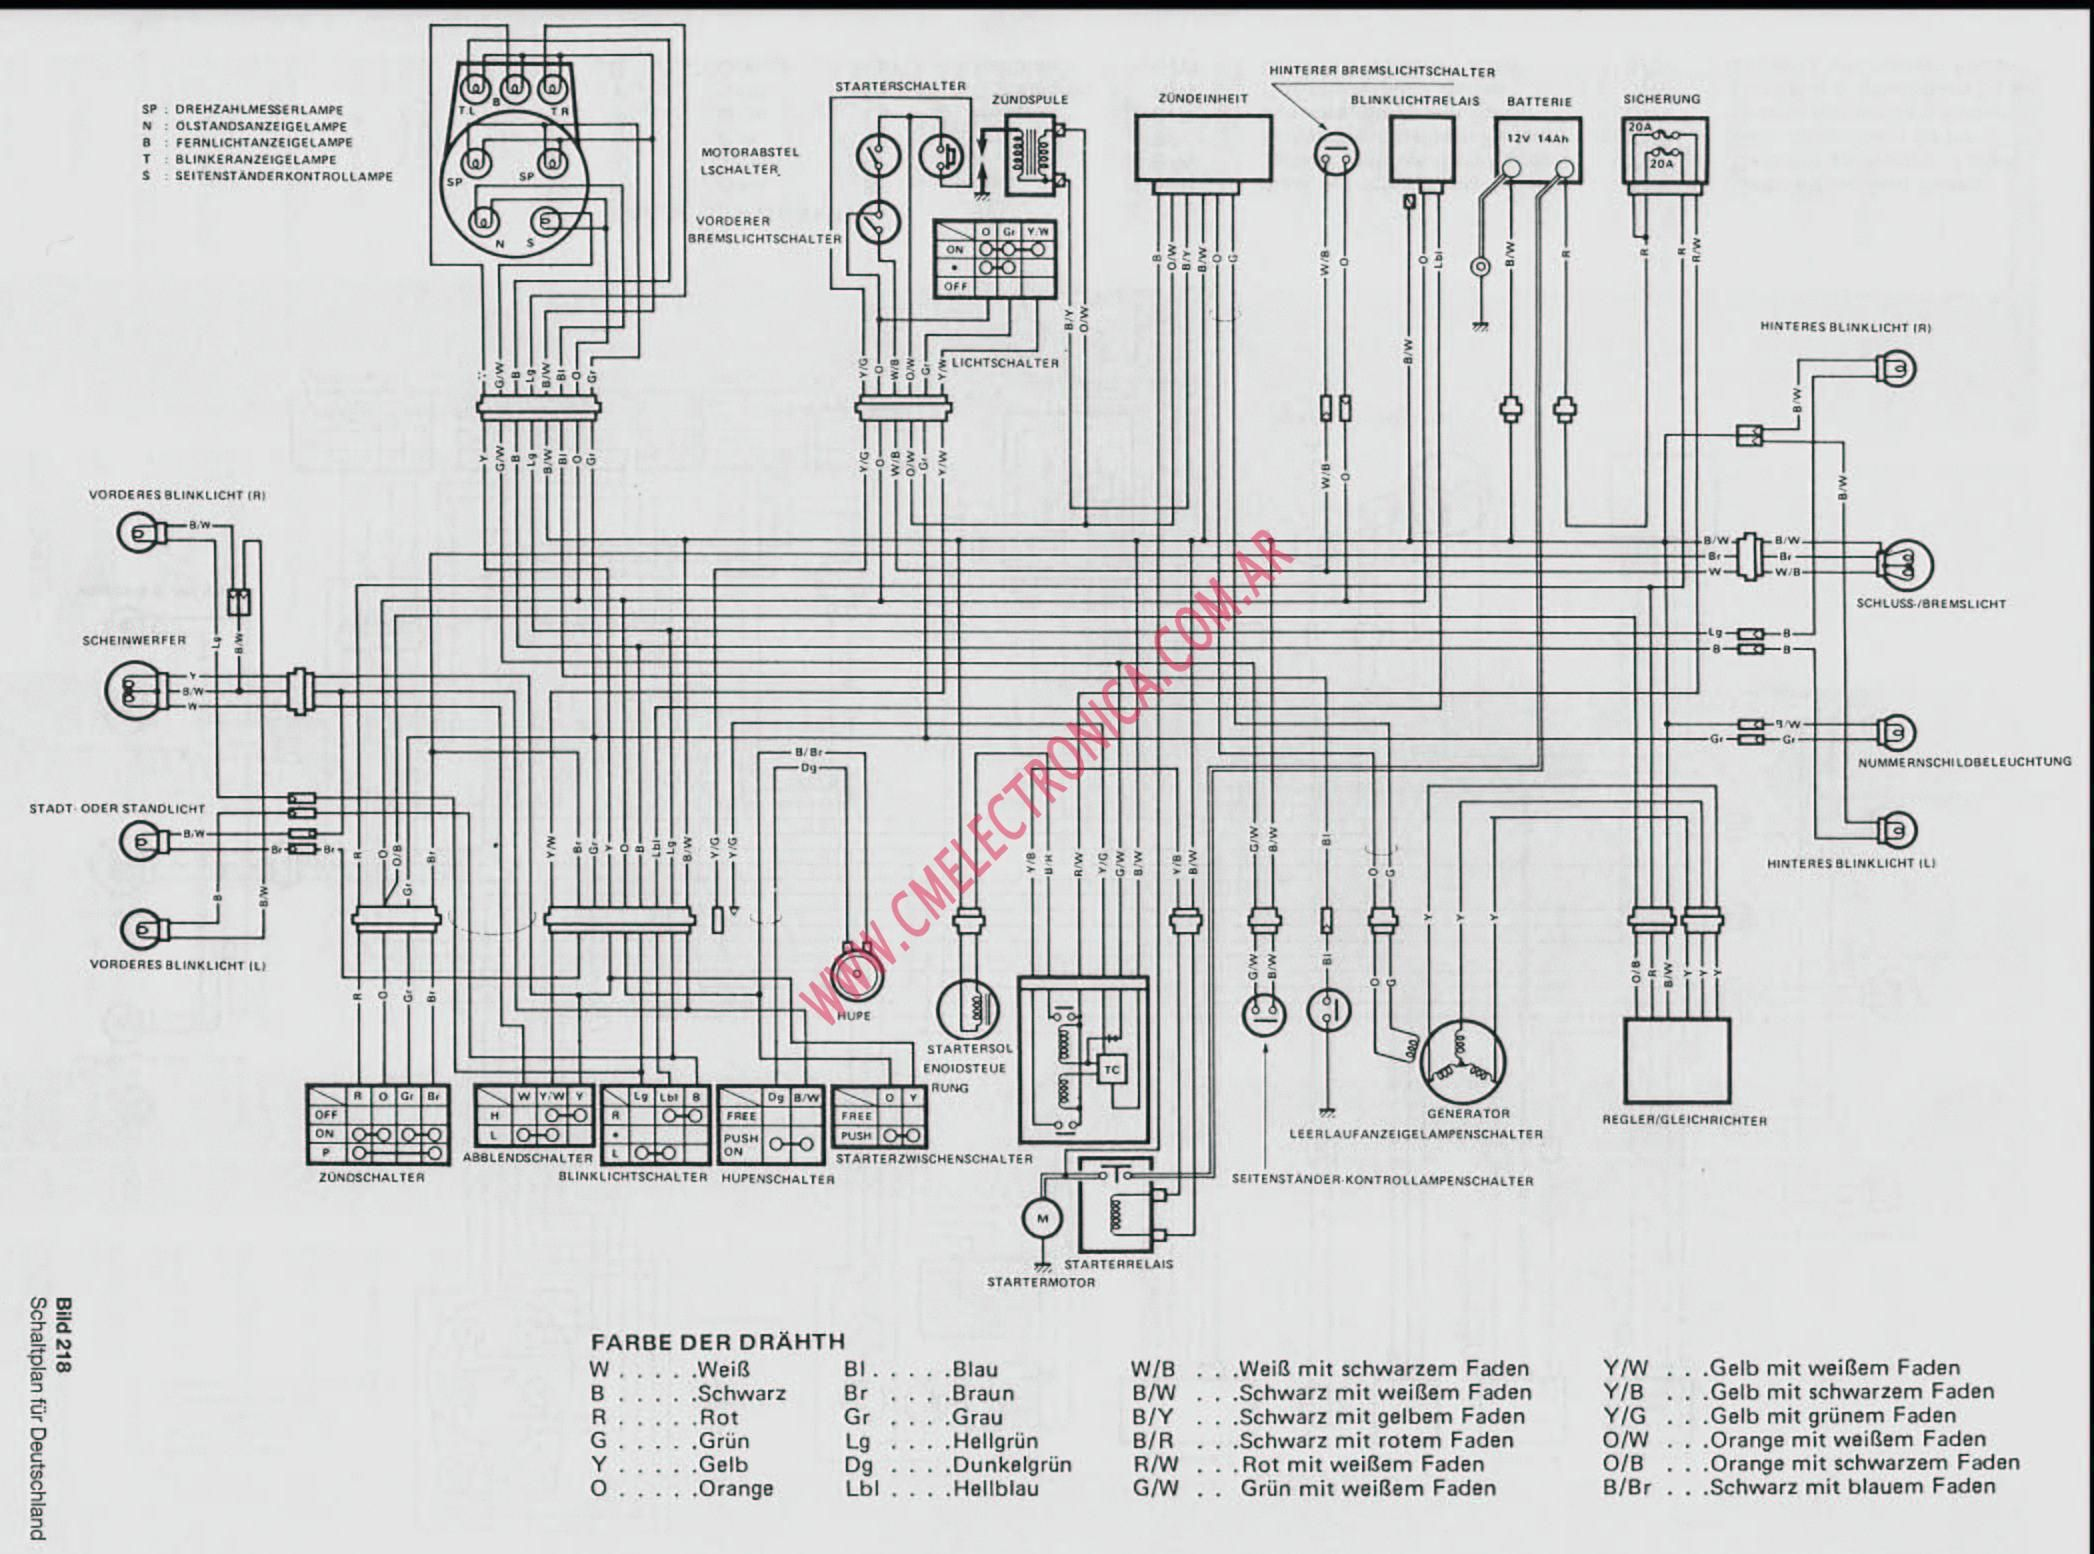 wiring diagram for suzuki savage 650 wiring diagram rh galeriehammer ch  1987 suzuki savage 650 wiring diagram